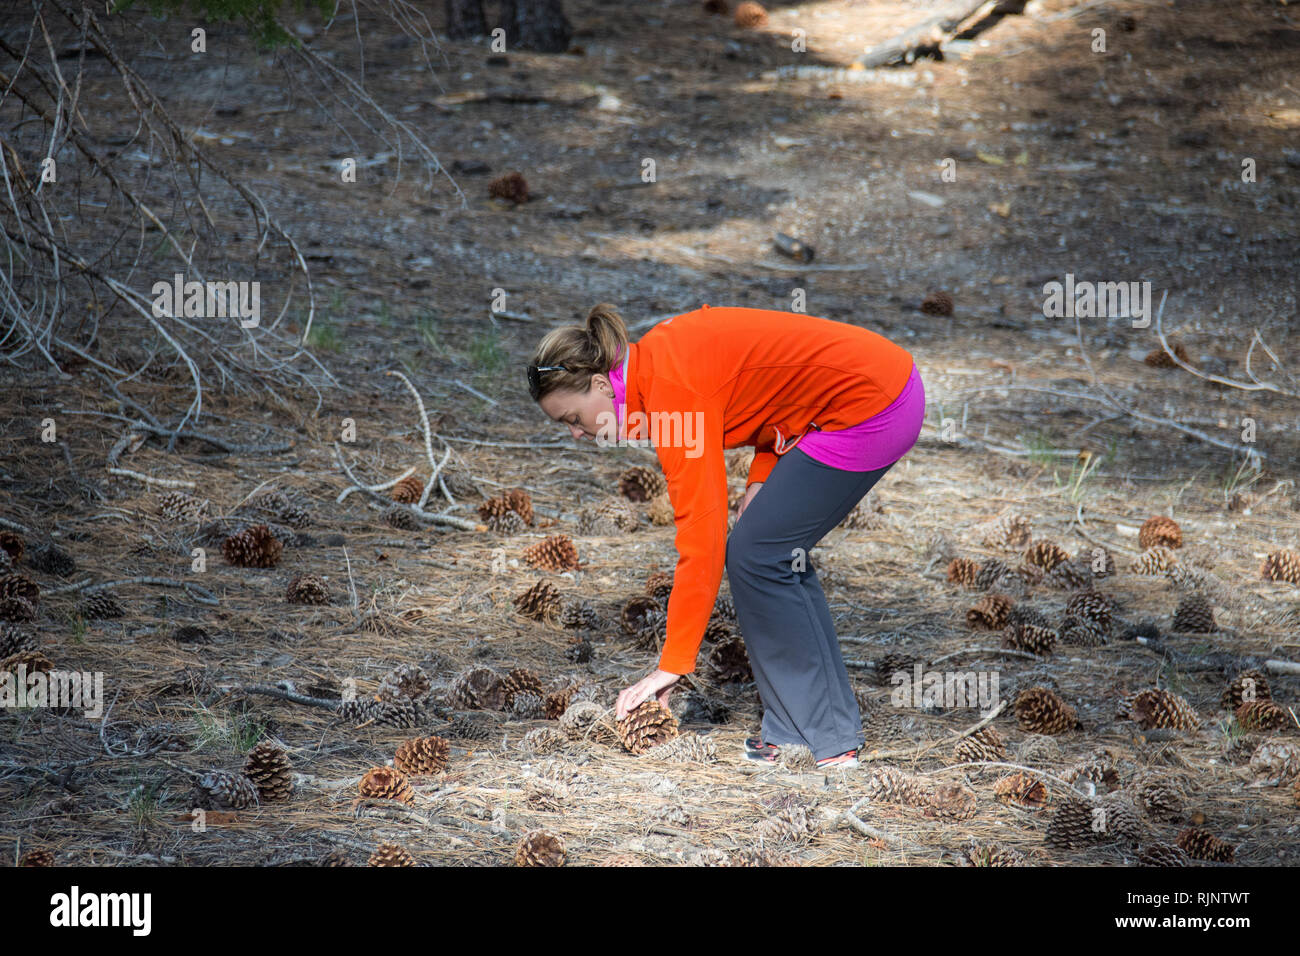 Adult woman bends over, picking up a large Jeffrey Pine Cone in a field in Mammoth Lakes California. - Stock Image